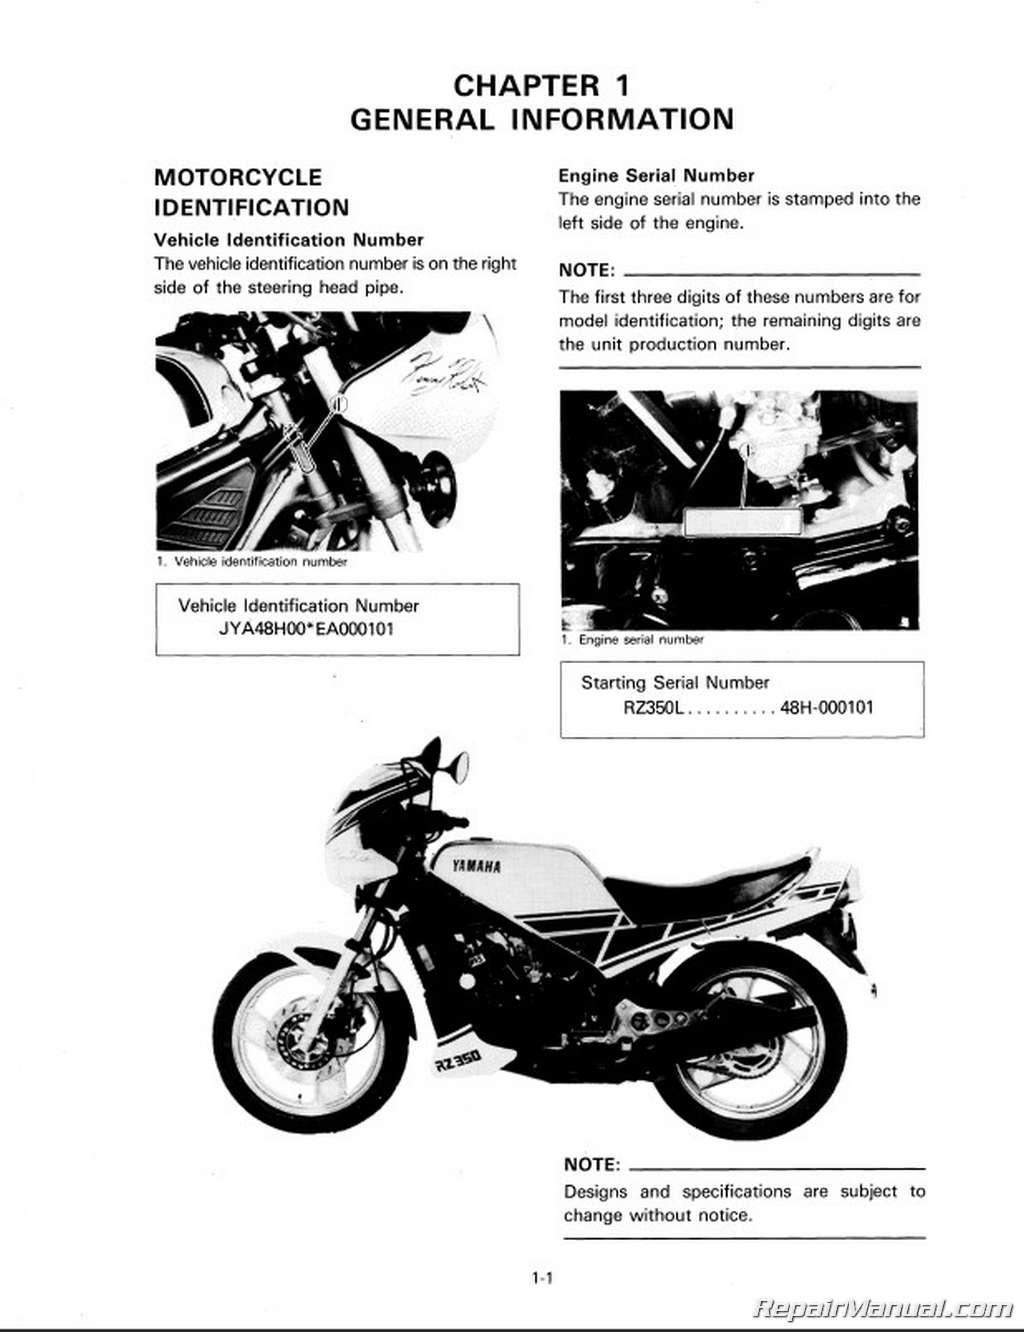 1984 1985 Yamaha Rz350 Manual Motorcycle Service